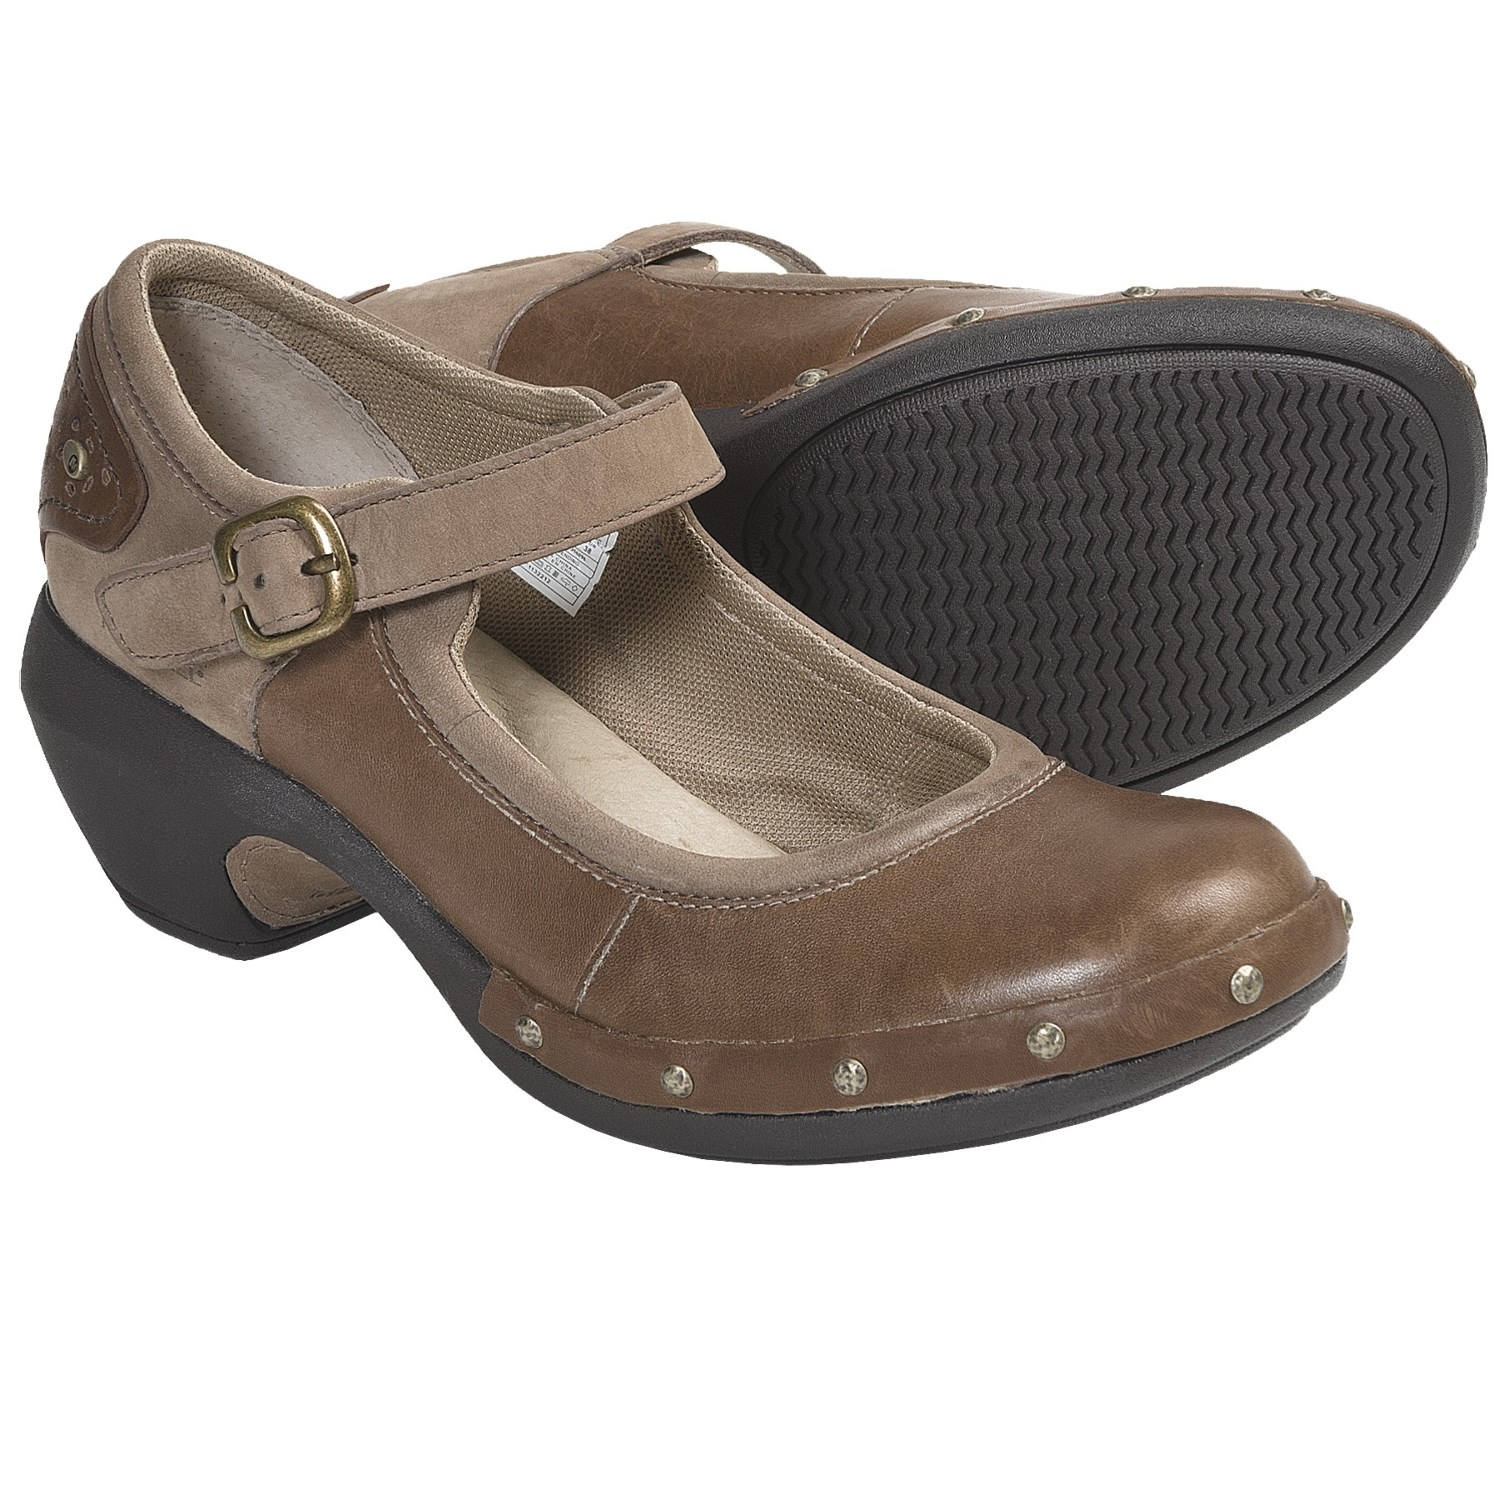 Merrell Luxe Mary Jane Shoes - Leather (For Women) in Otter